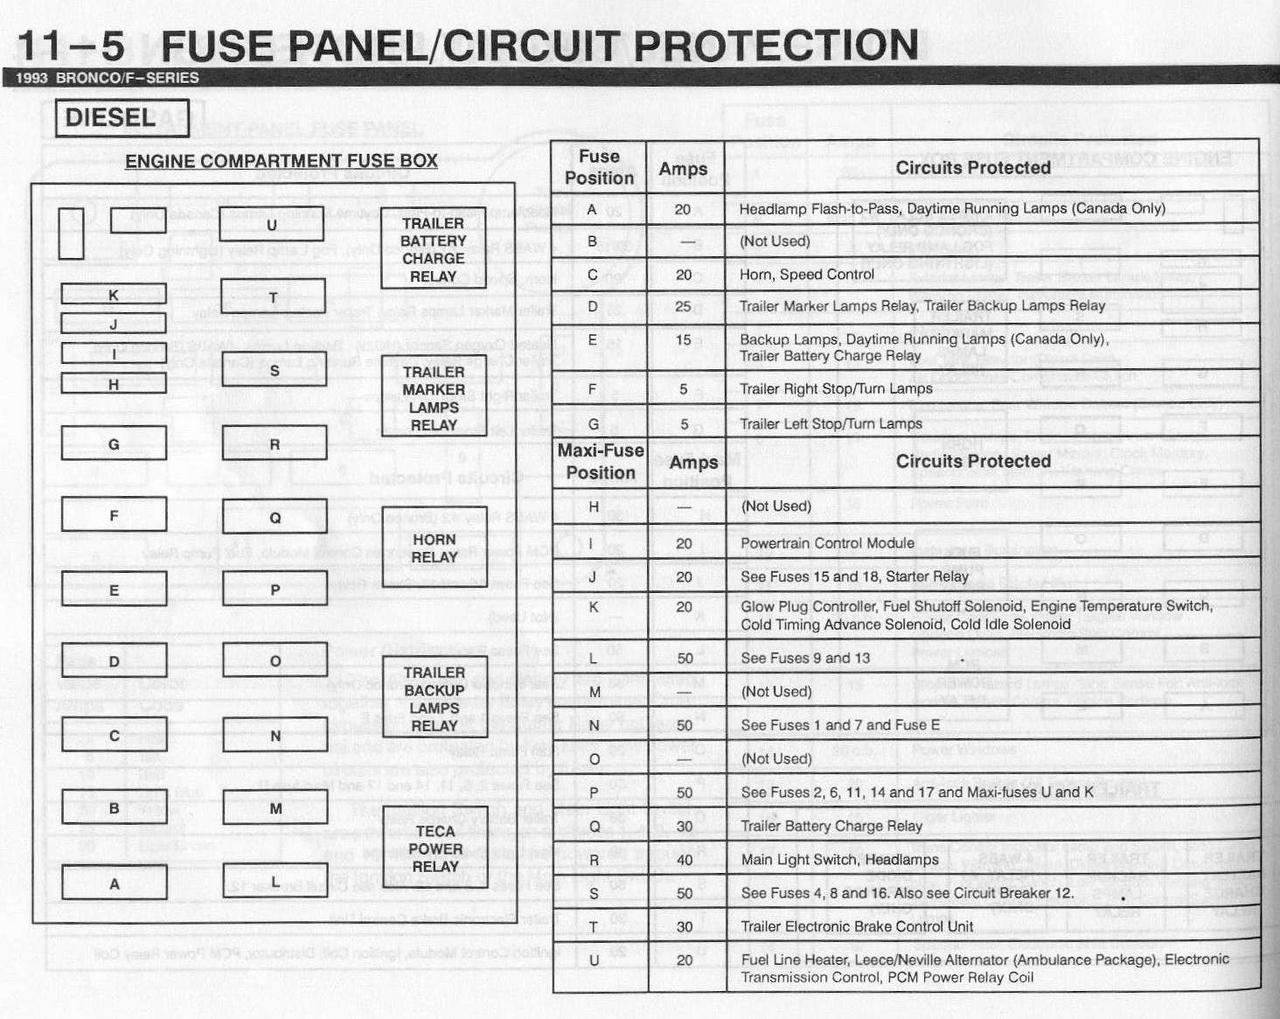 fuse box diagram as well as 2001 ford f 250 diesel fuse box diagram